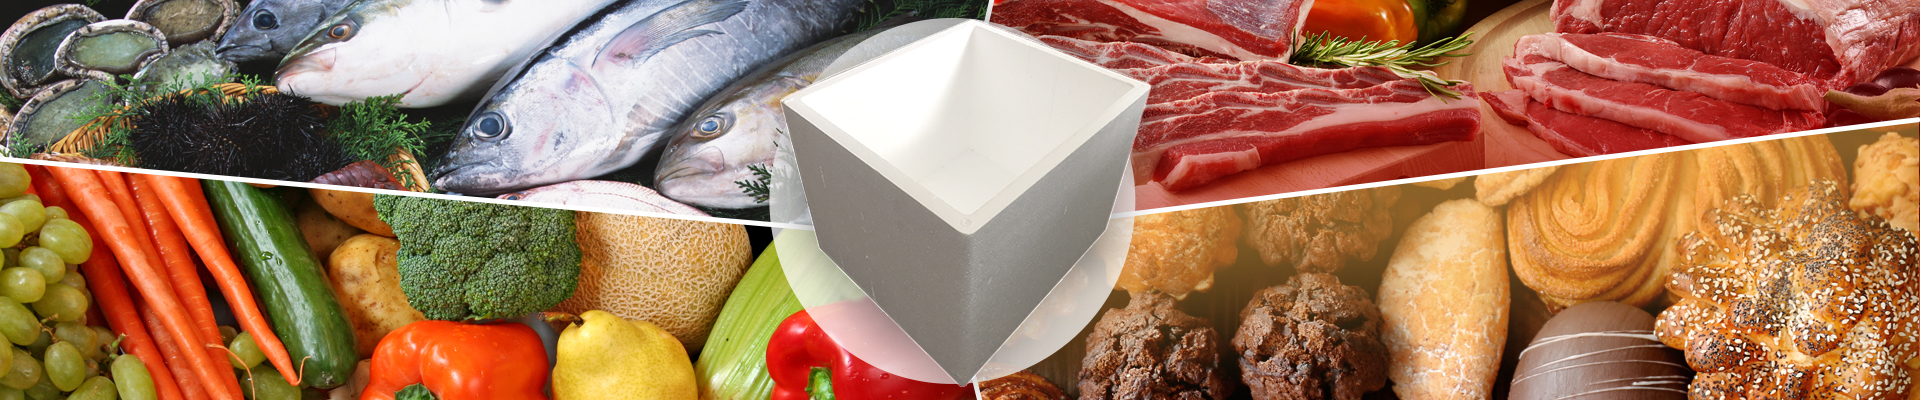 Polypackaging – polystyrene boxes and packaging solutions